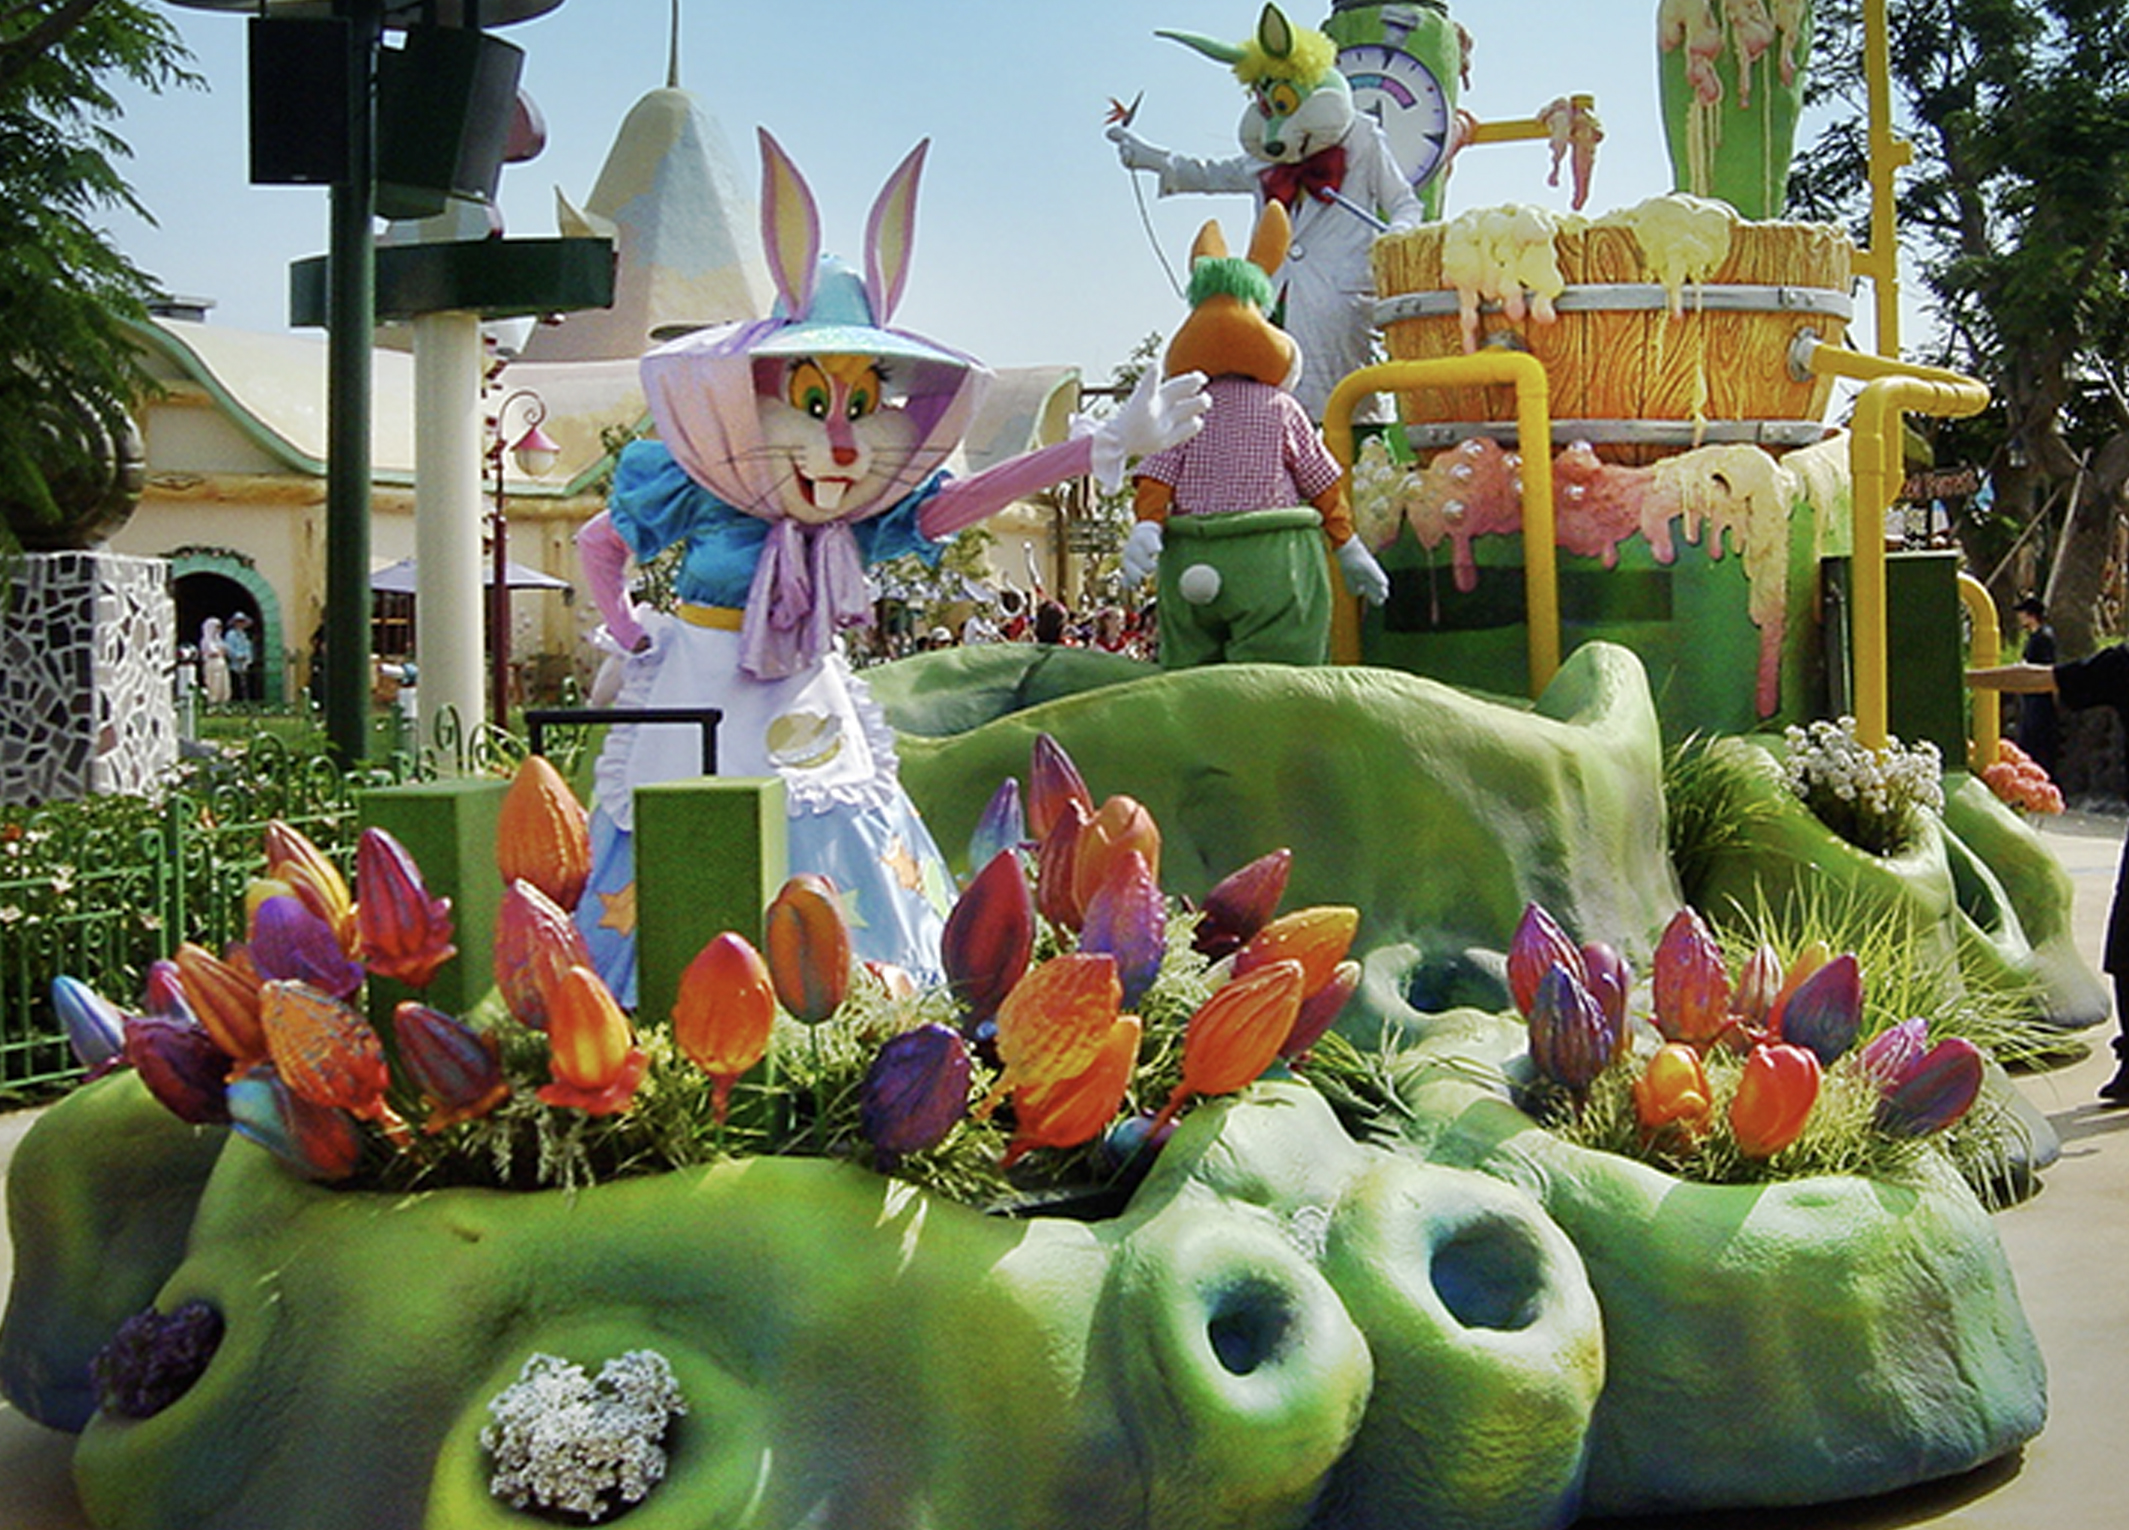 themed float-lotte world 5.jpg